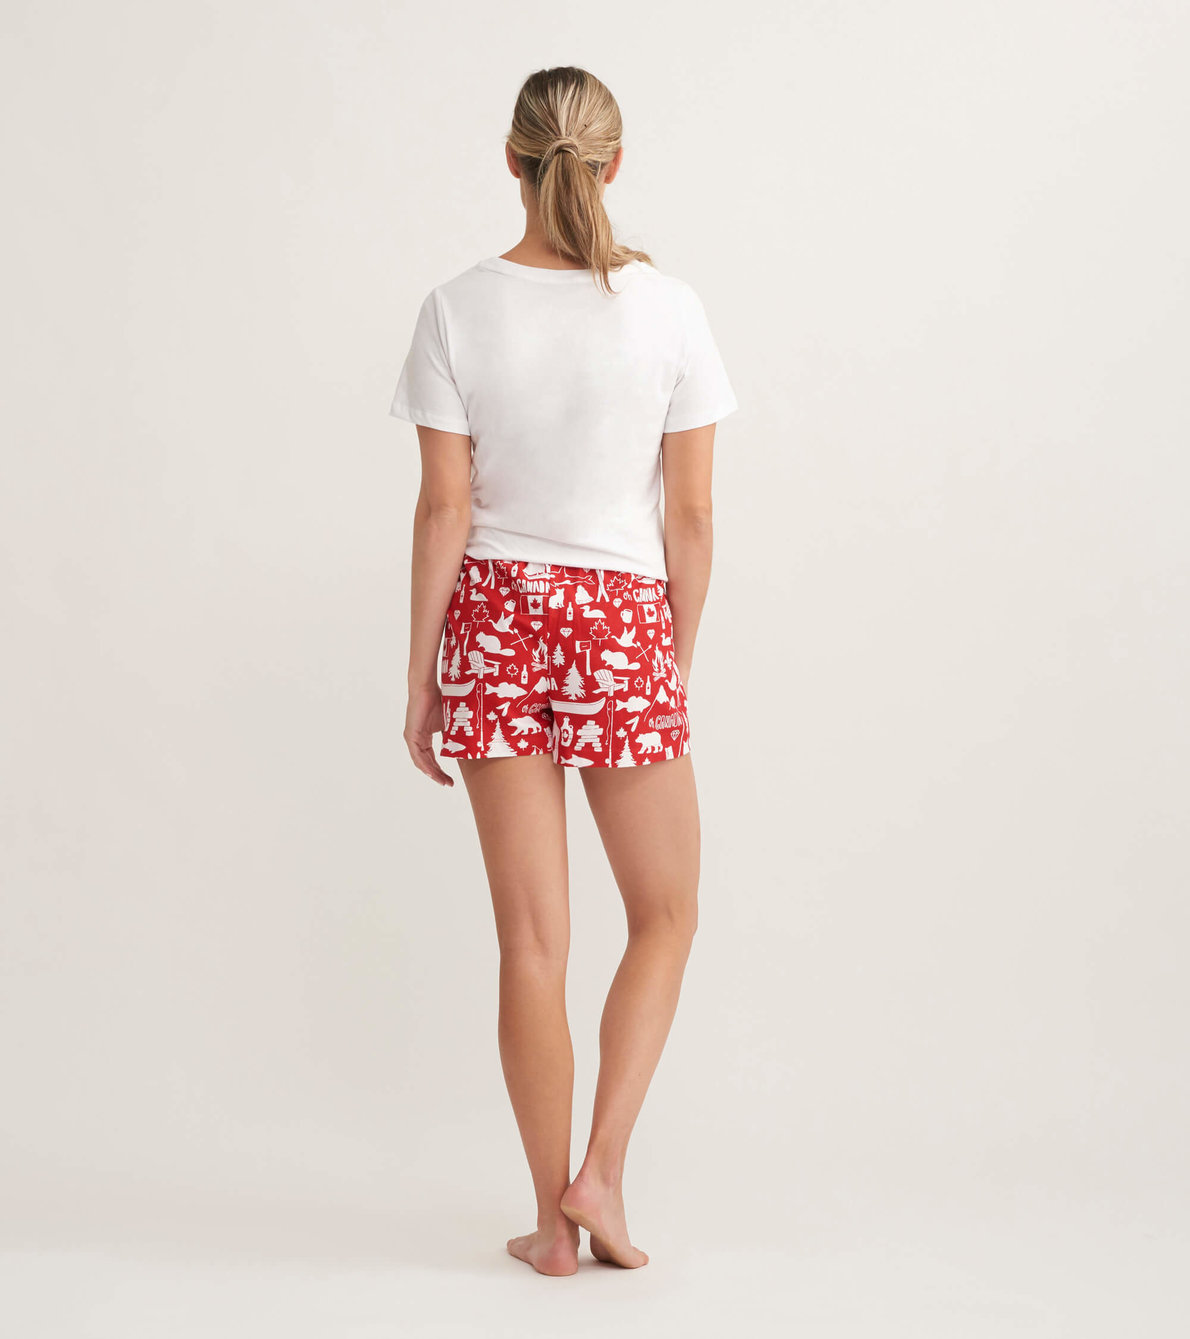 View larger image of Oh Canada Women's Tee and Shorts Pajama Separates